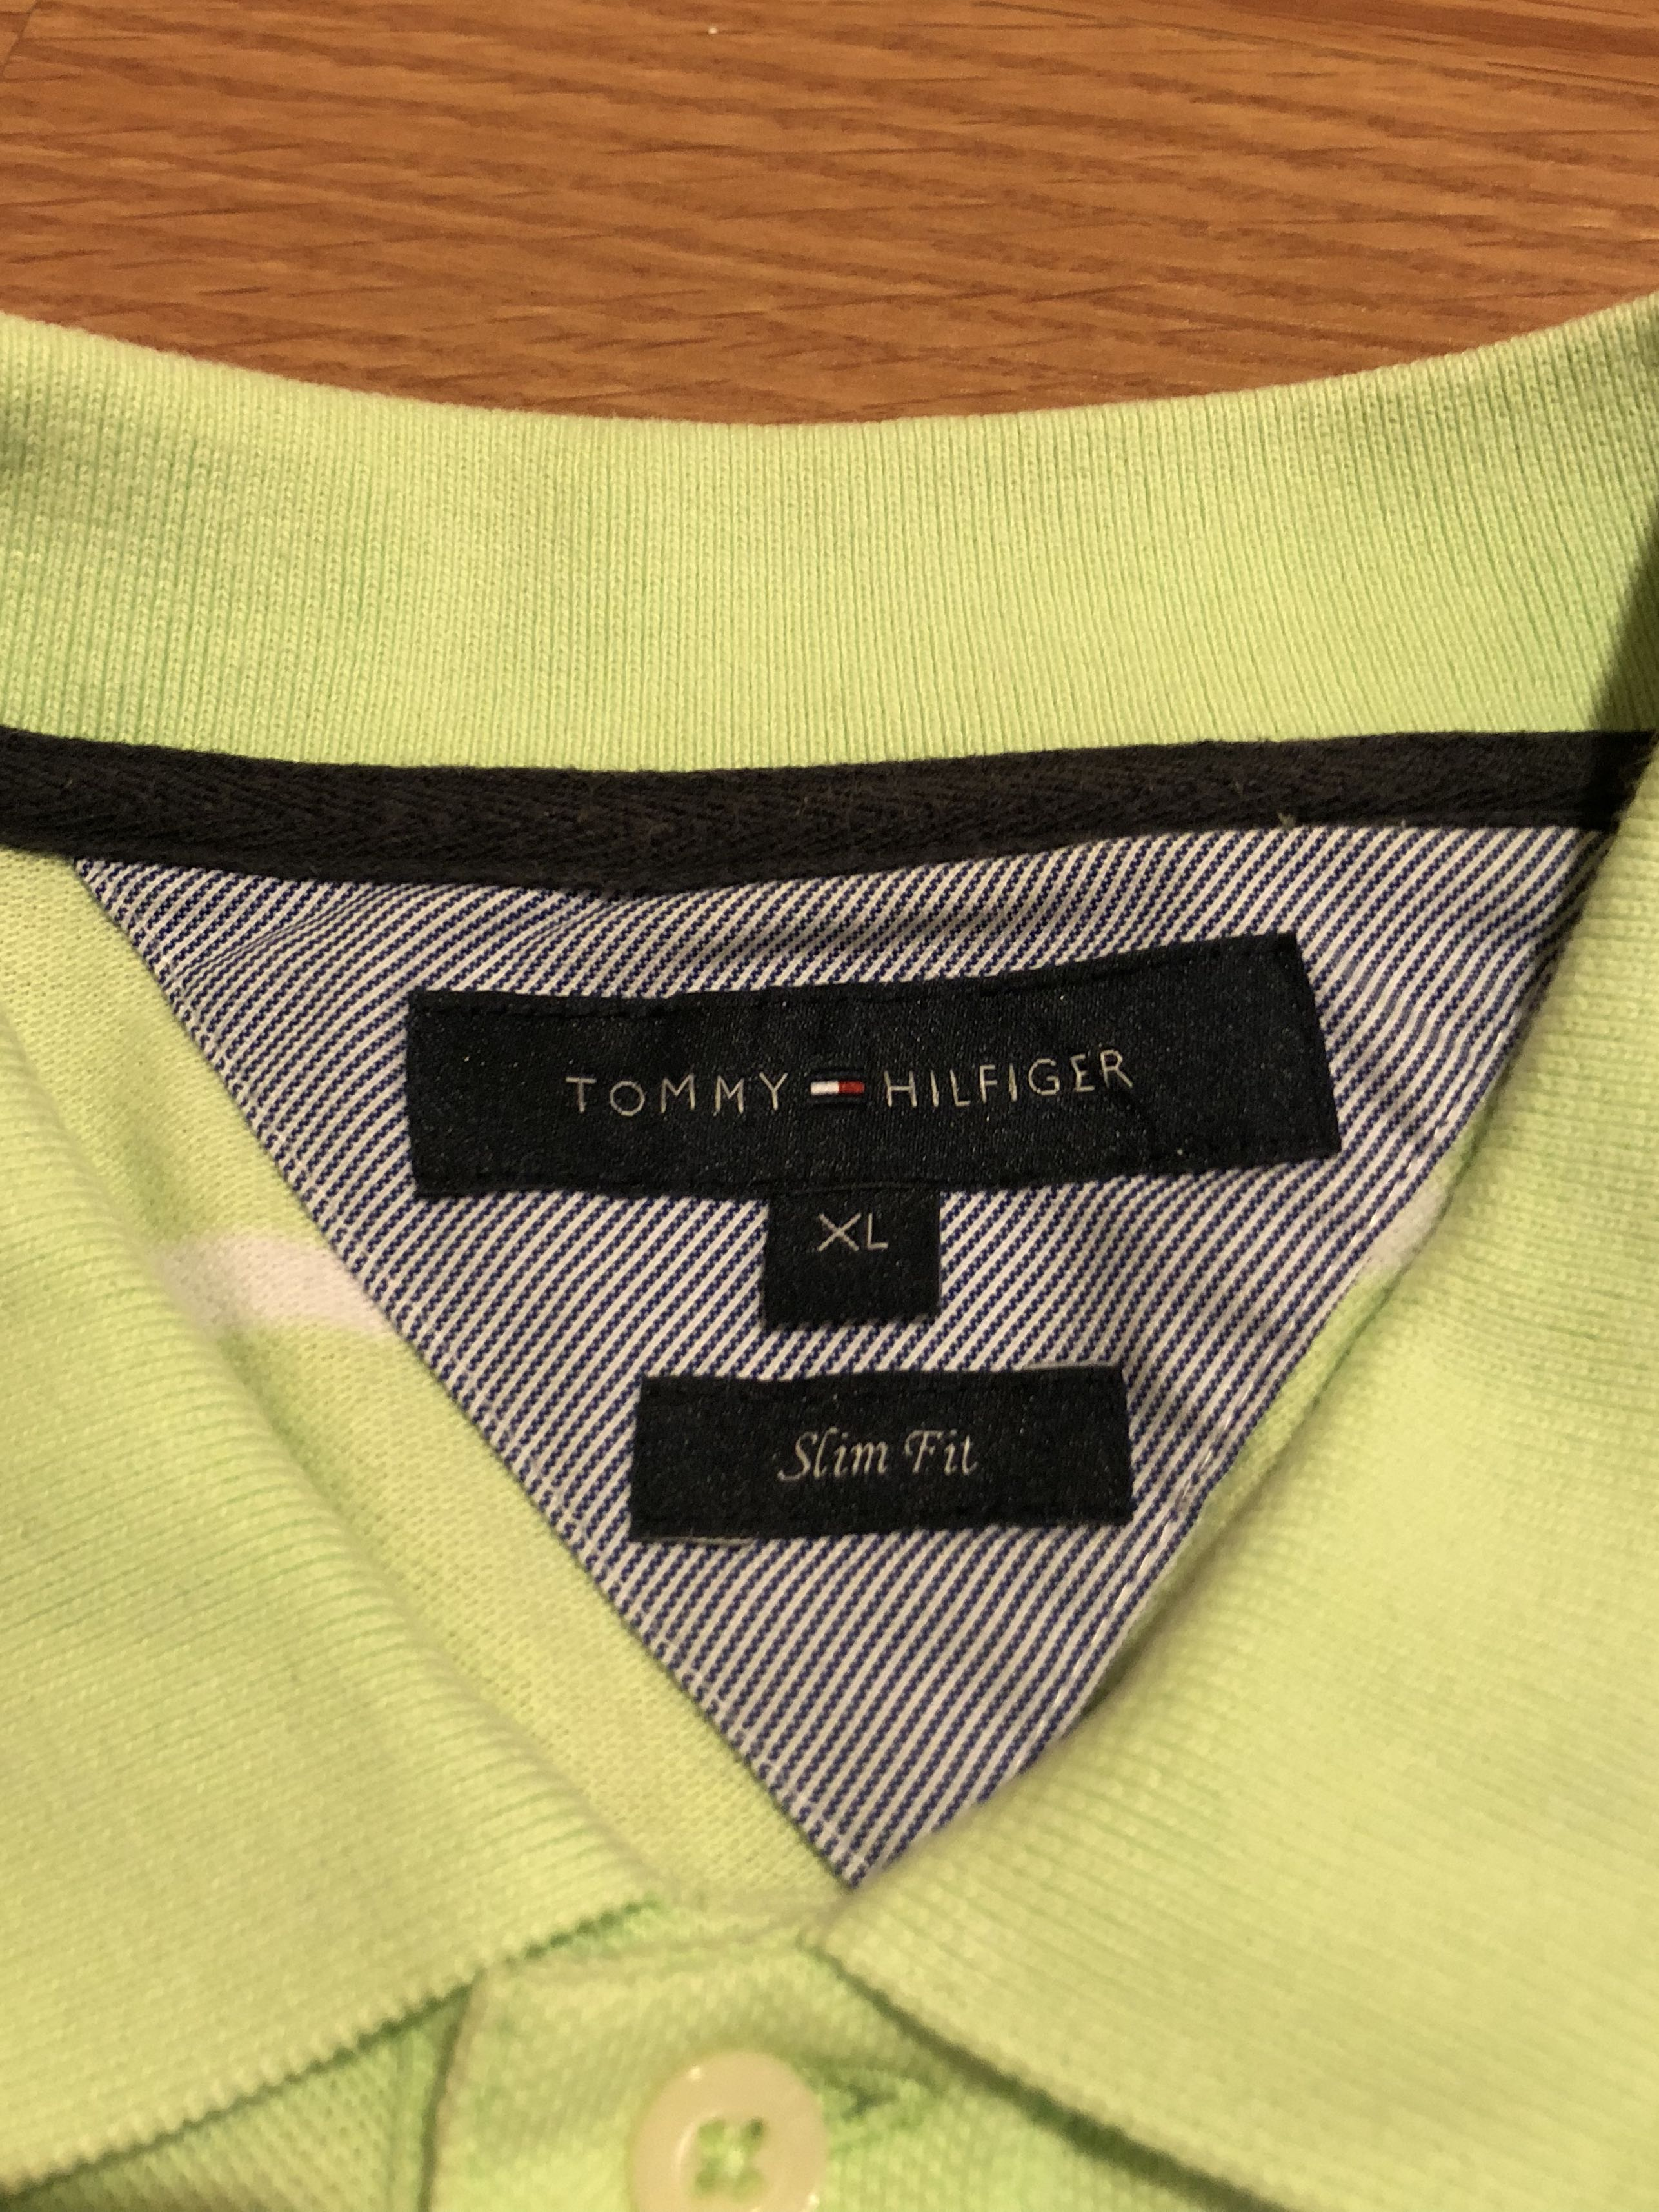 8d01e9a9 Vintage Tommy Hilfiger polo, Men's Fashion, Clothes, Tops on Carousell